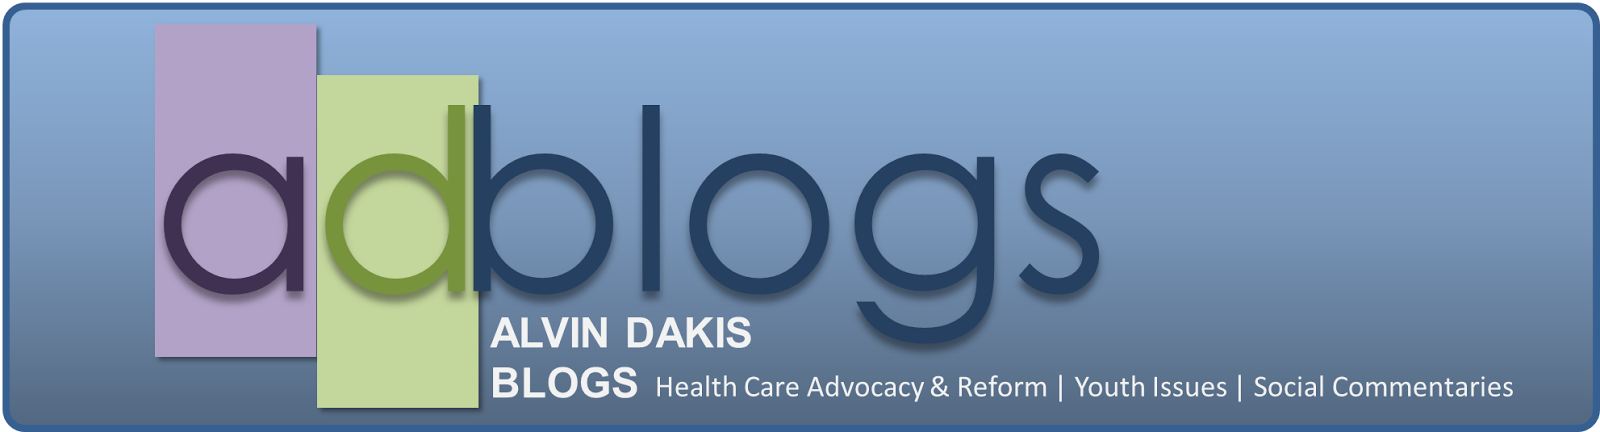 Alvin Dakis Blogs